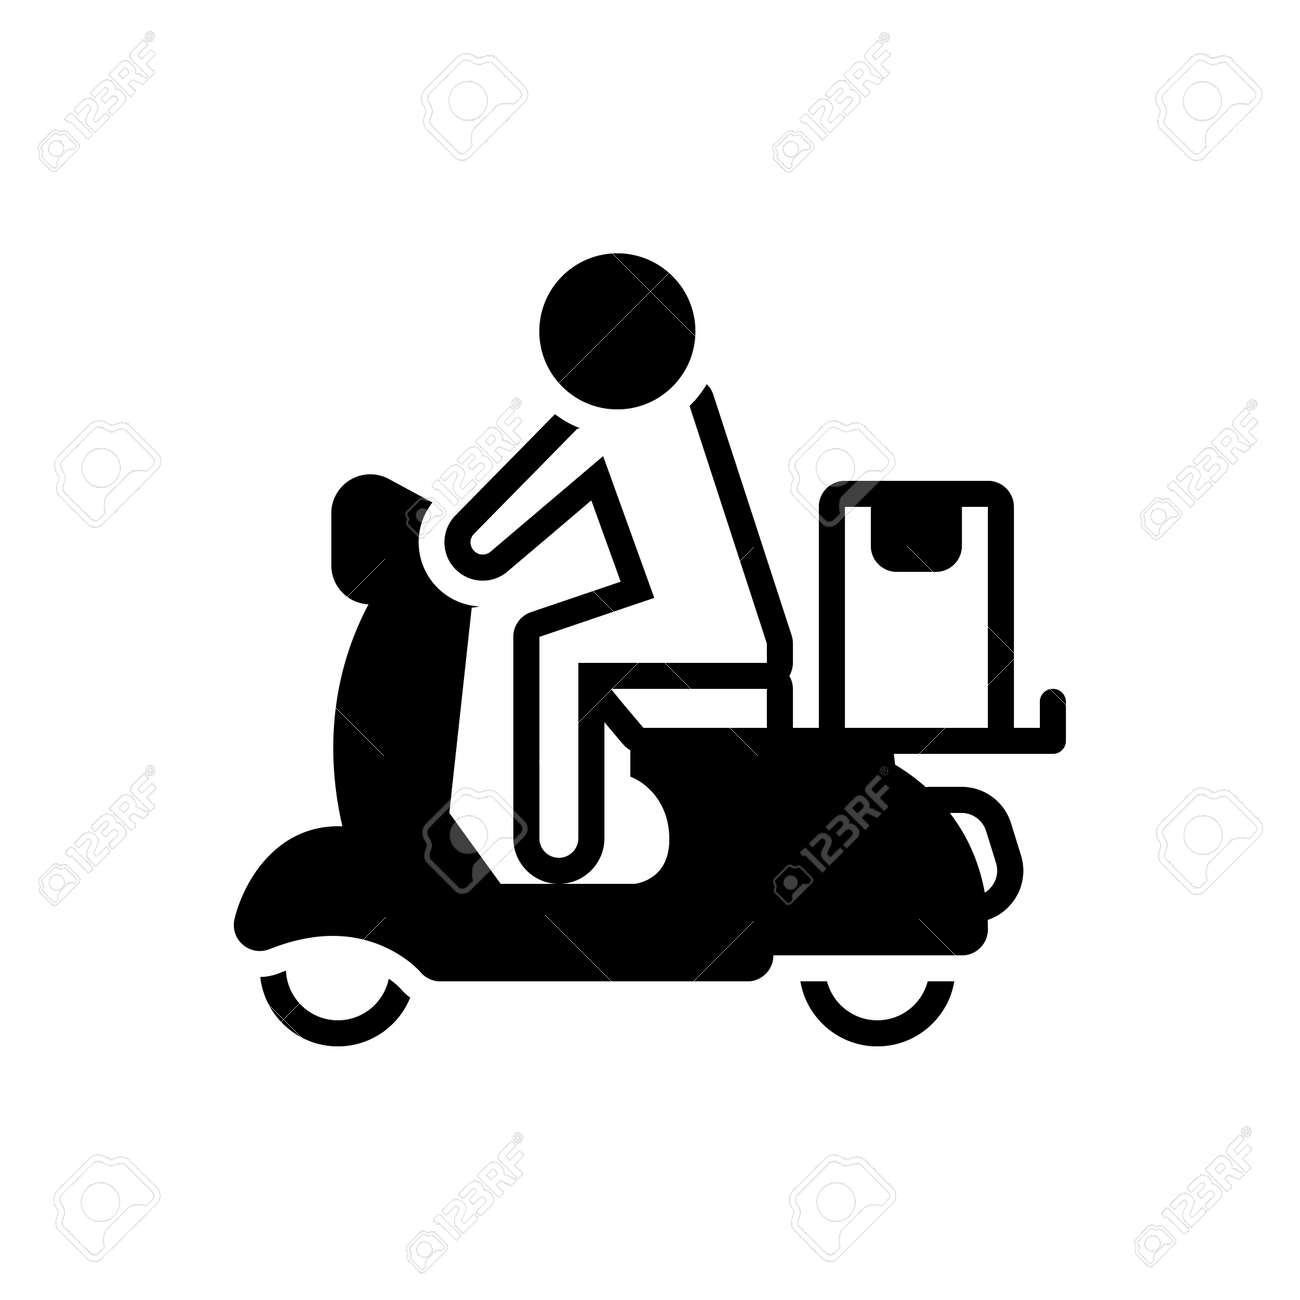 Icon for delivery,fast,service - 172215079